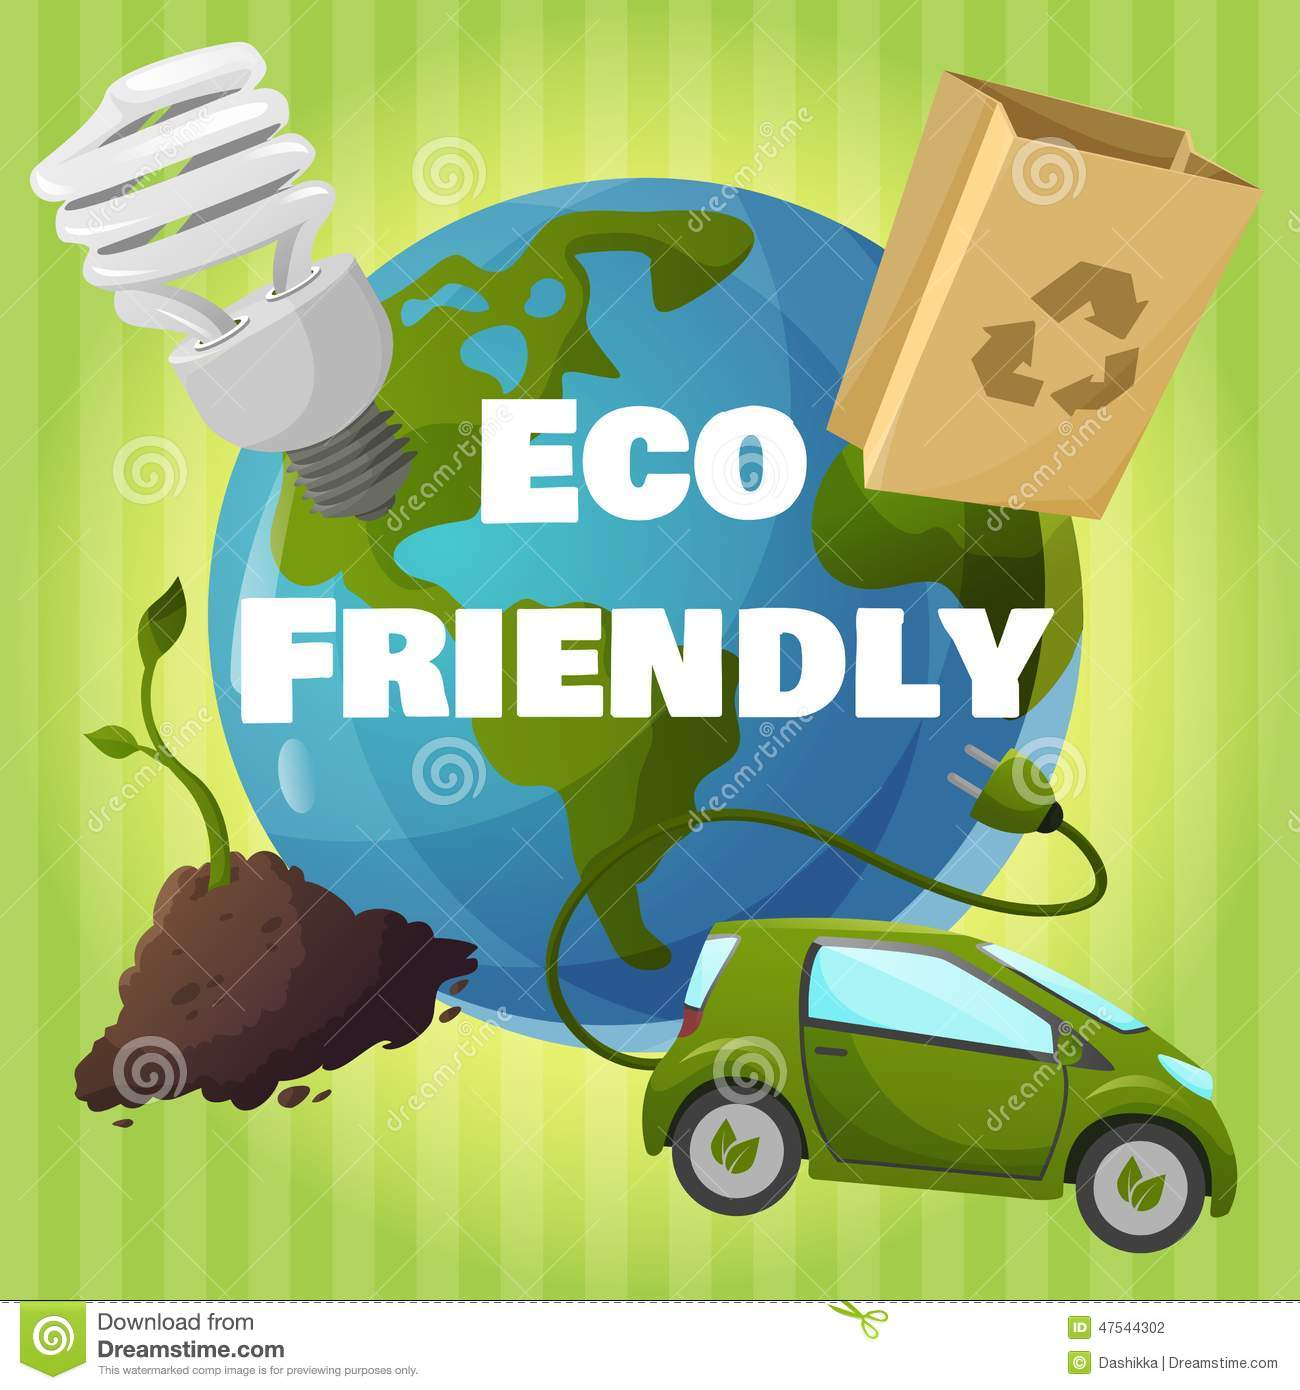 Eco Friendly Poster Stock Vector - Image: 47544302